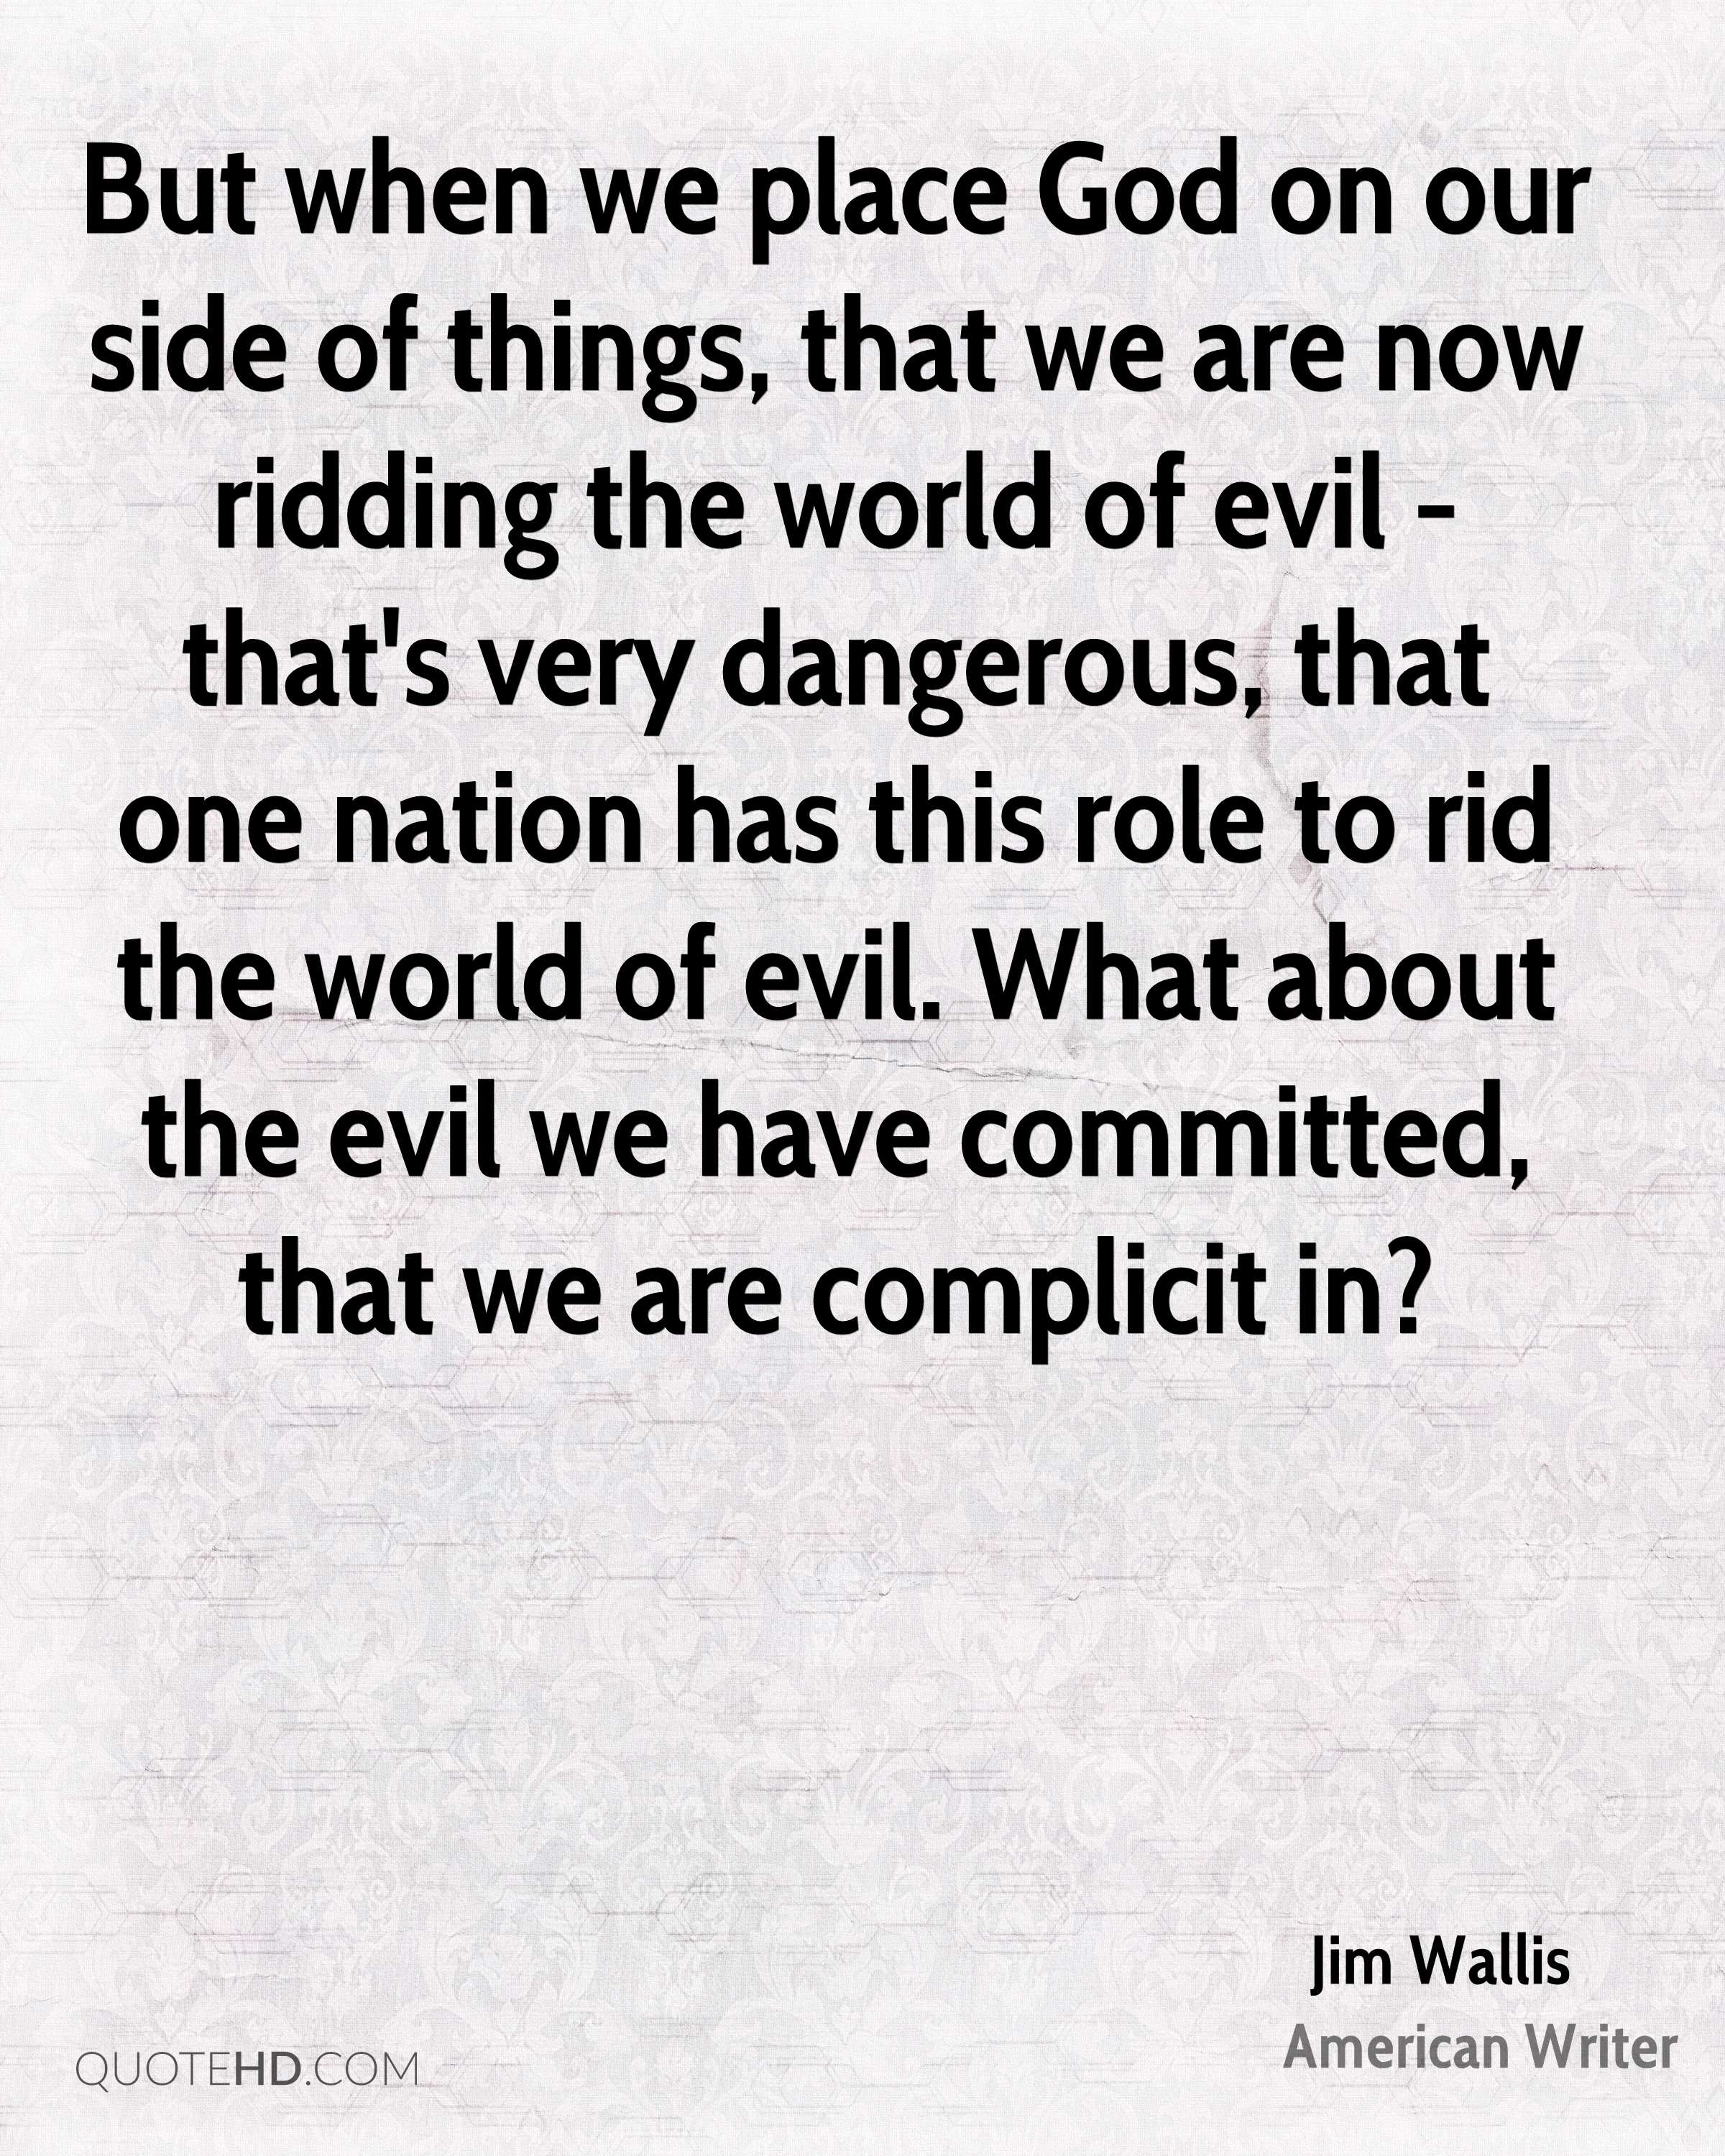 But when we place God on our side of things, that we are now ridding the world of evil - that's very dangerous, that one nation has this role to rid the world of evil. What about the evil we have committed, that we are complicit in?